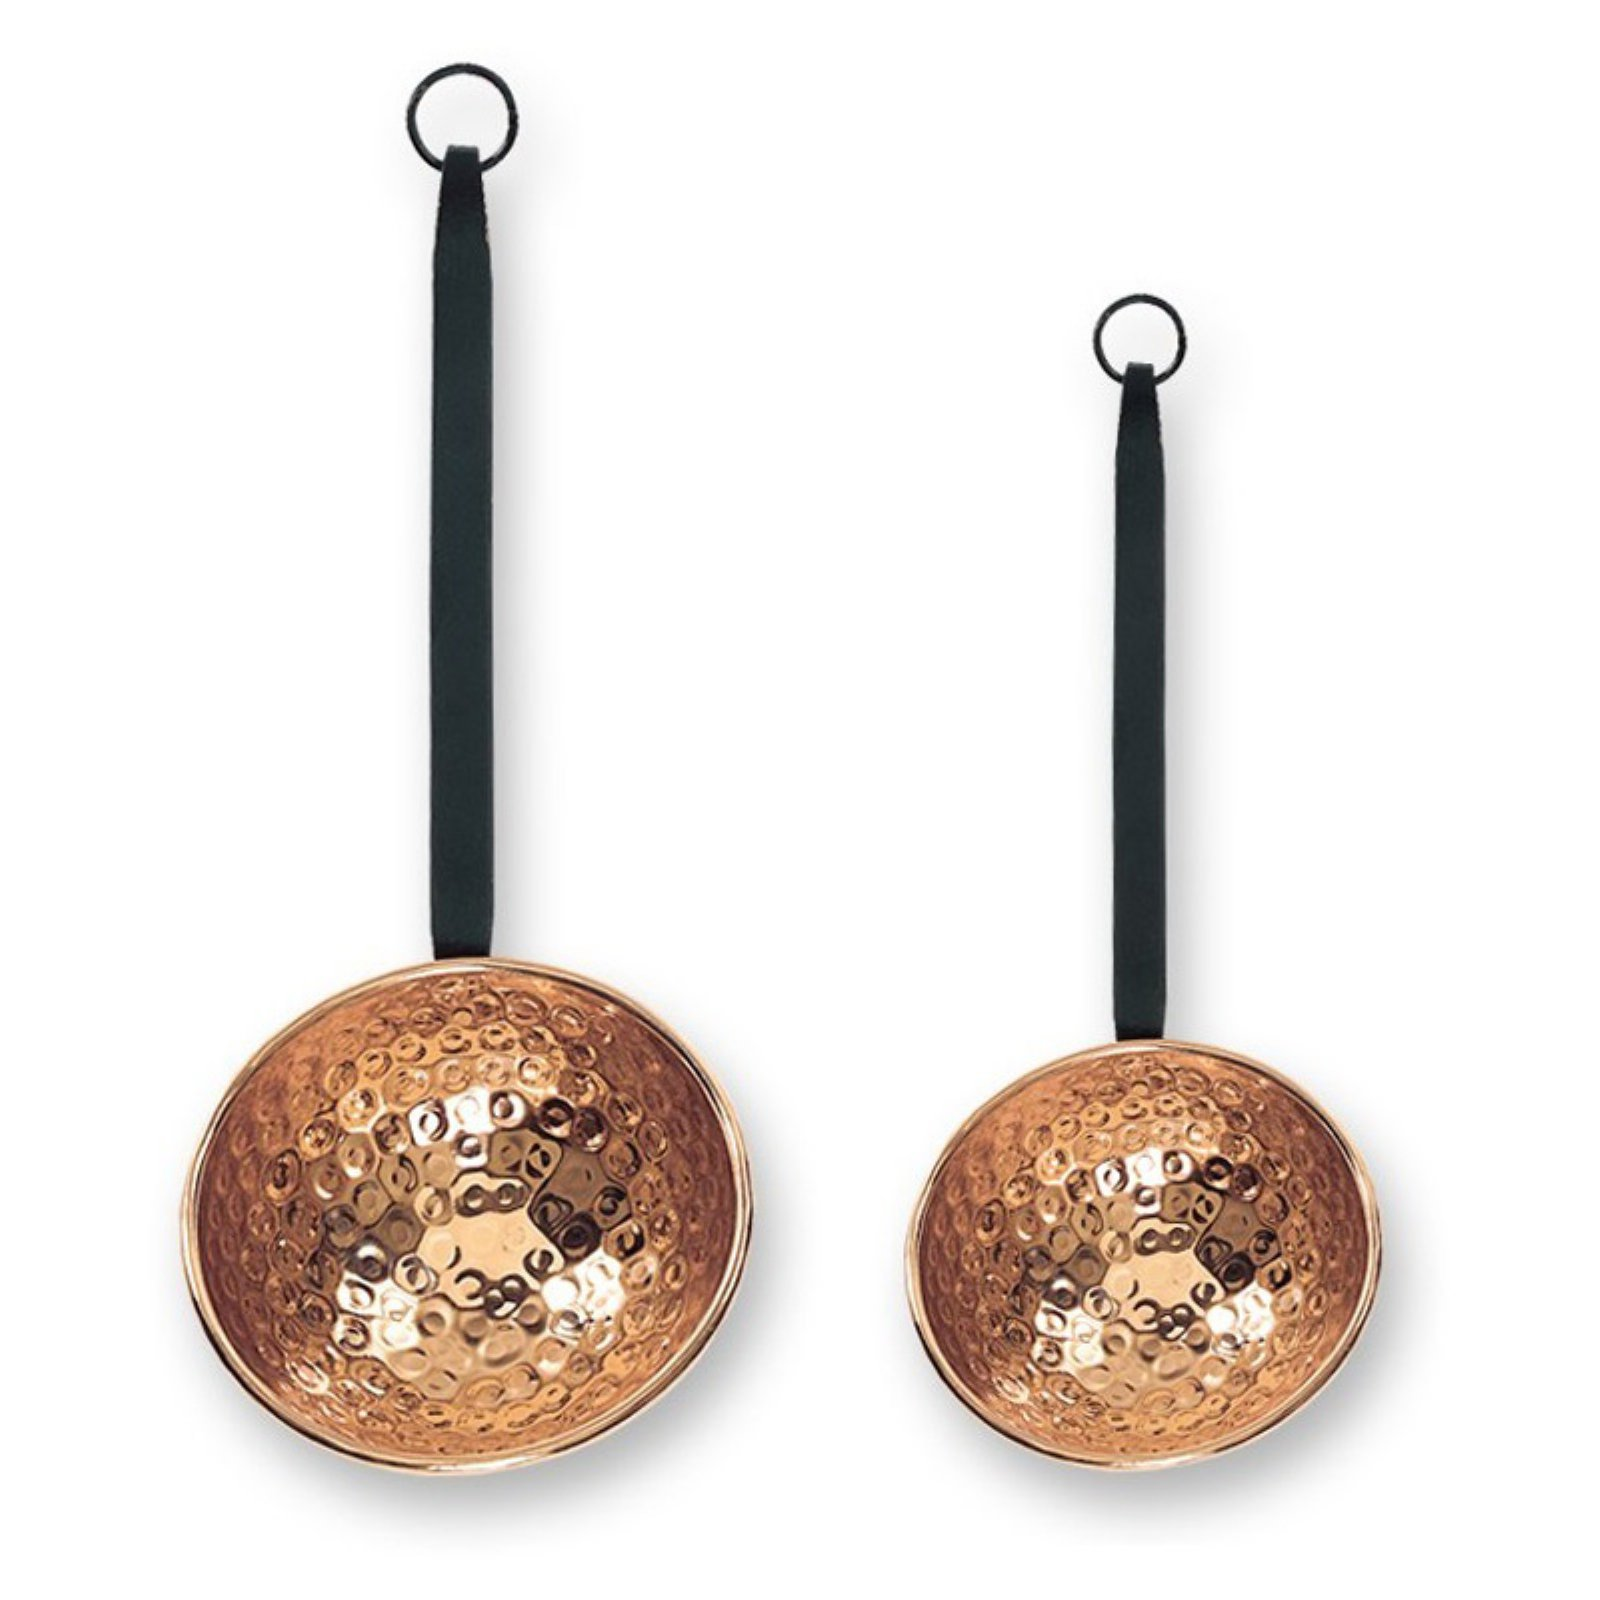 Old Dutch Decor Copper Ladles with Wrought Iron Handles - Set of 2